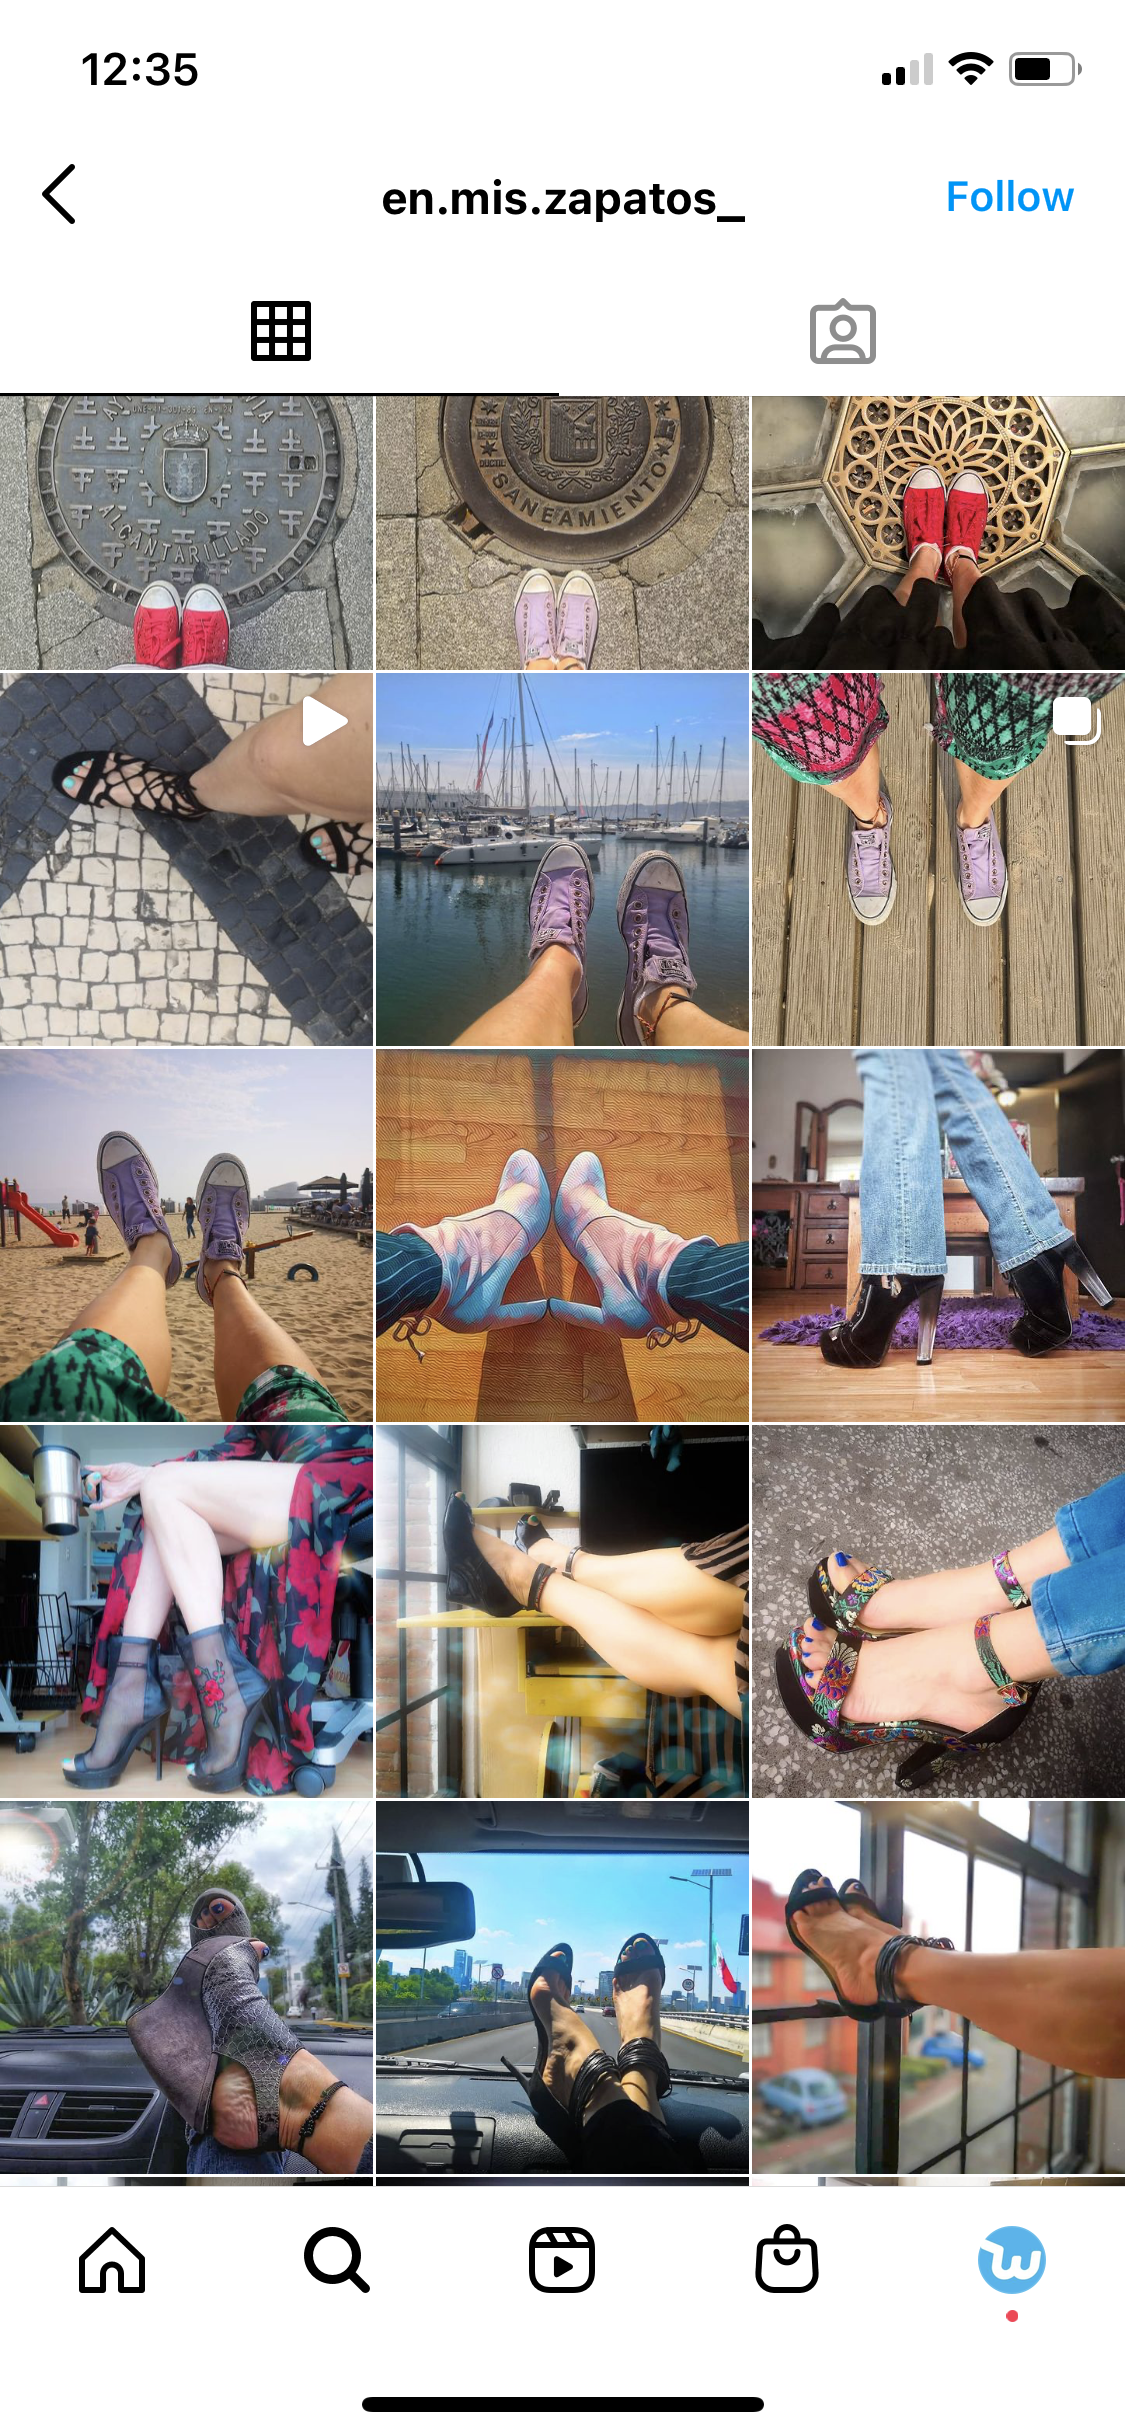 Instagram feed of shoes